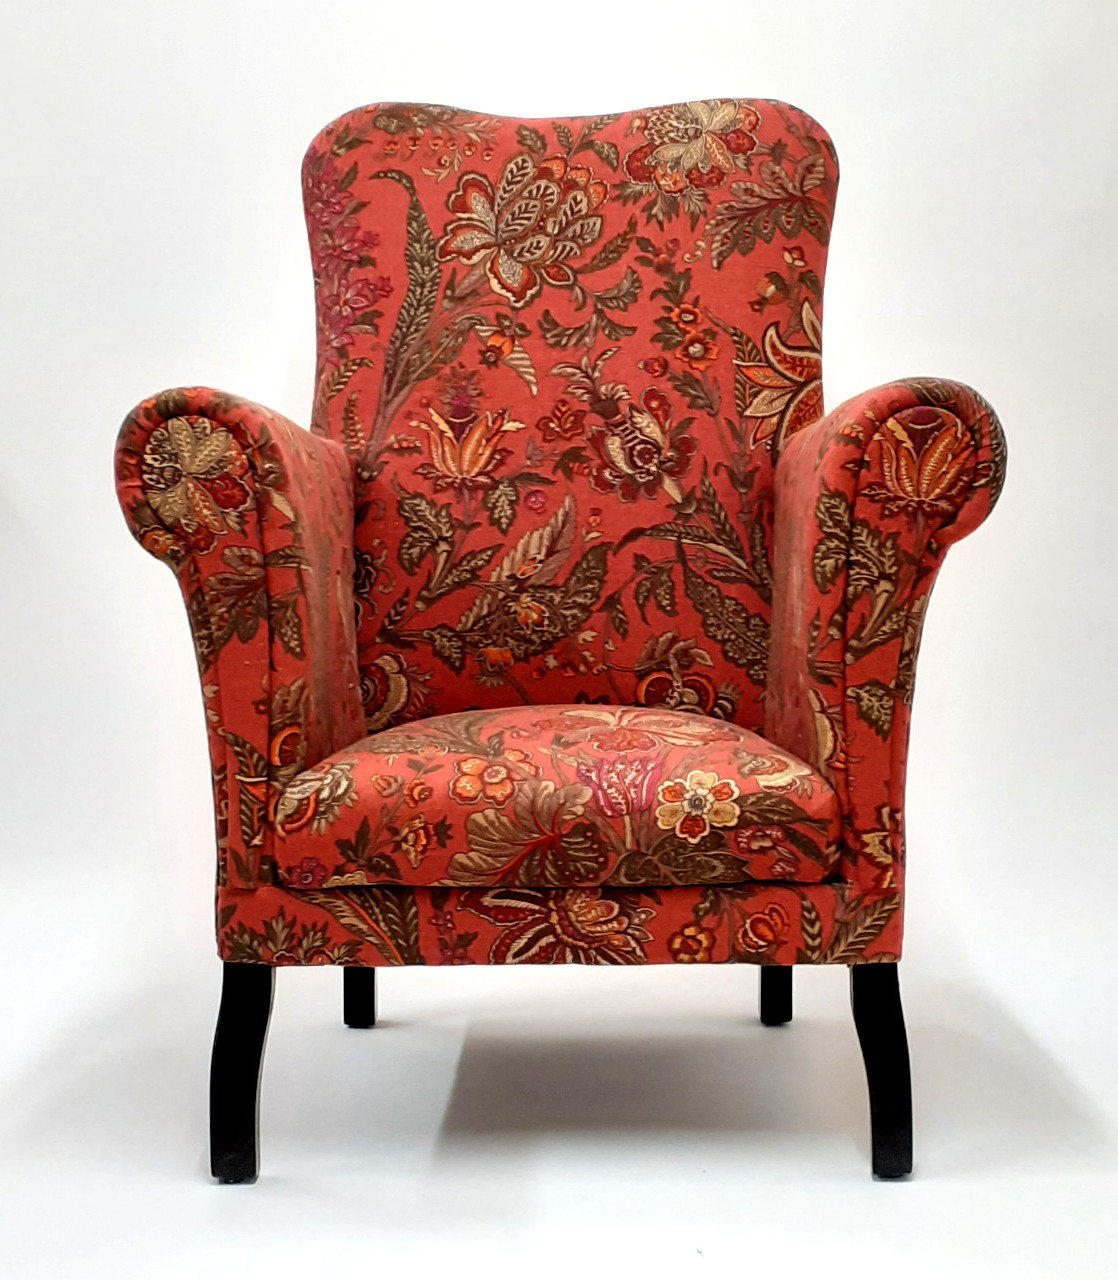 Cottage armchair feels the love again reupholstered in a classic Flower of Nepal linen print by Sanderson